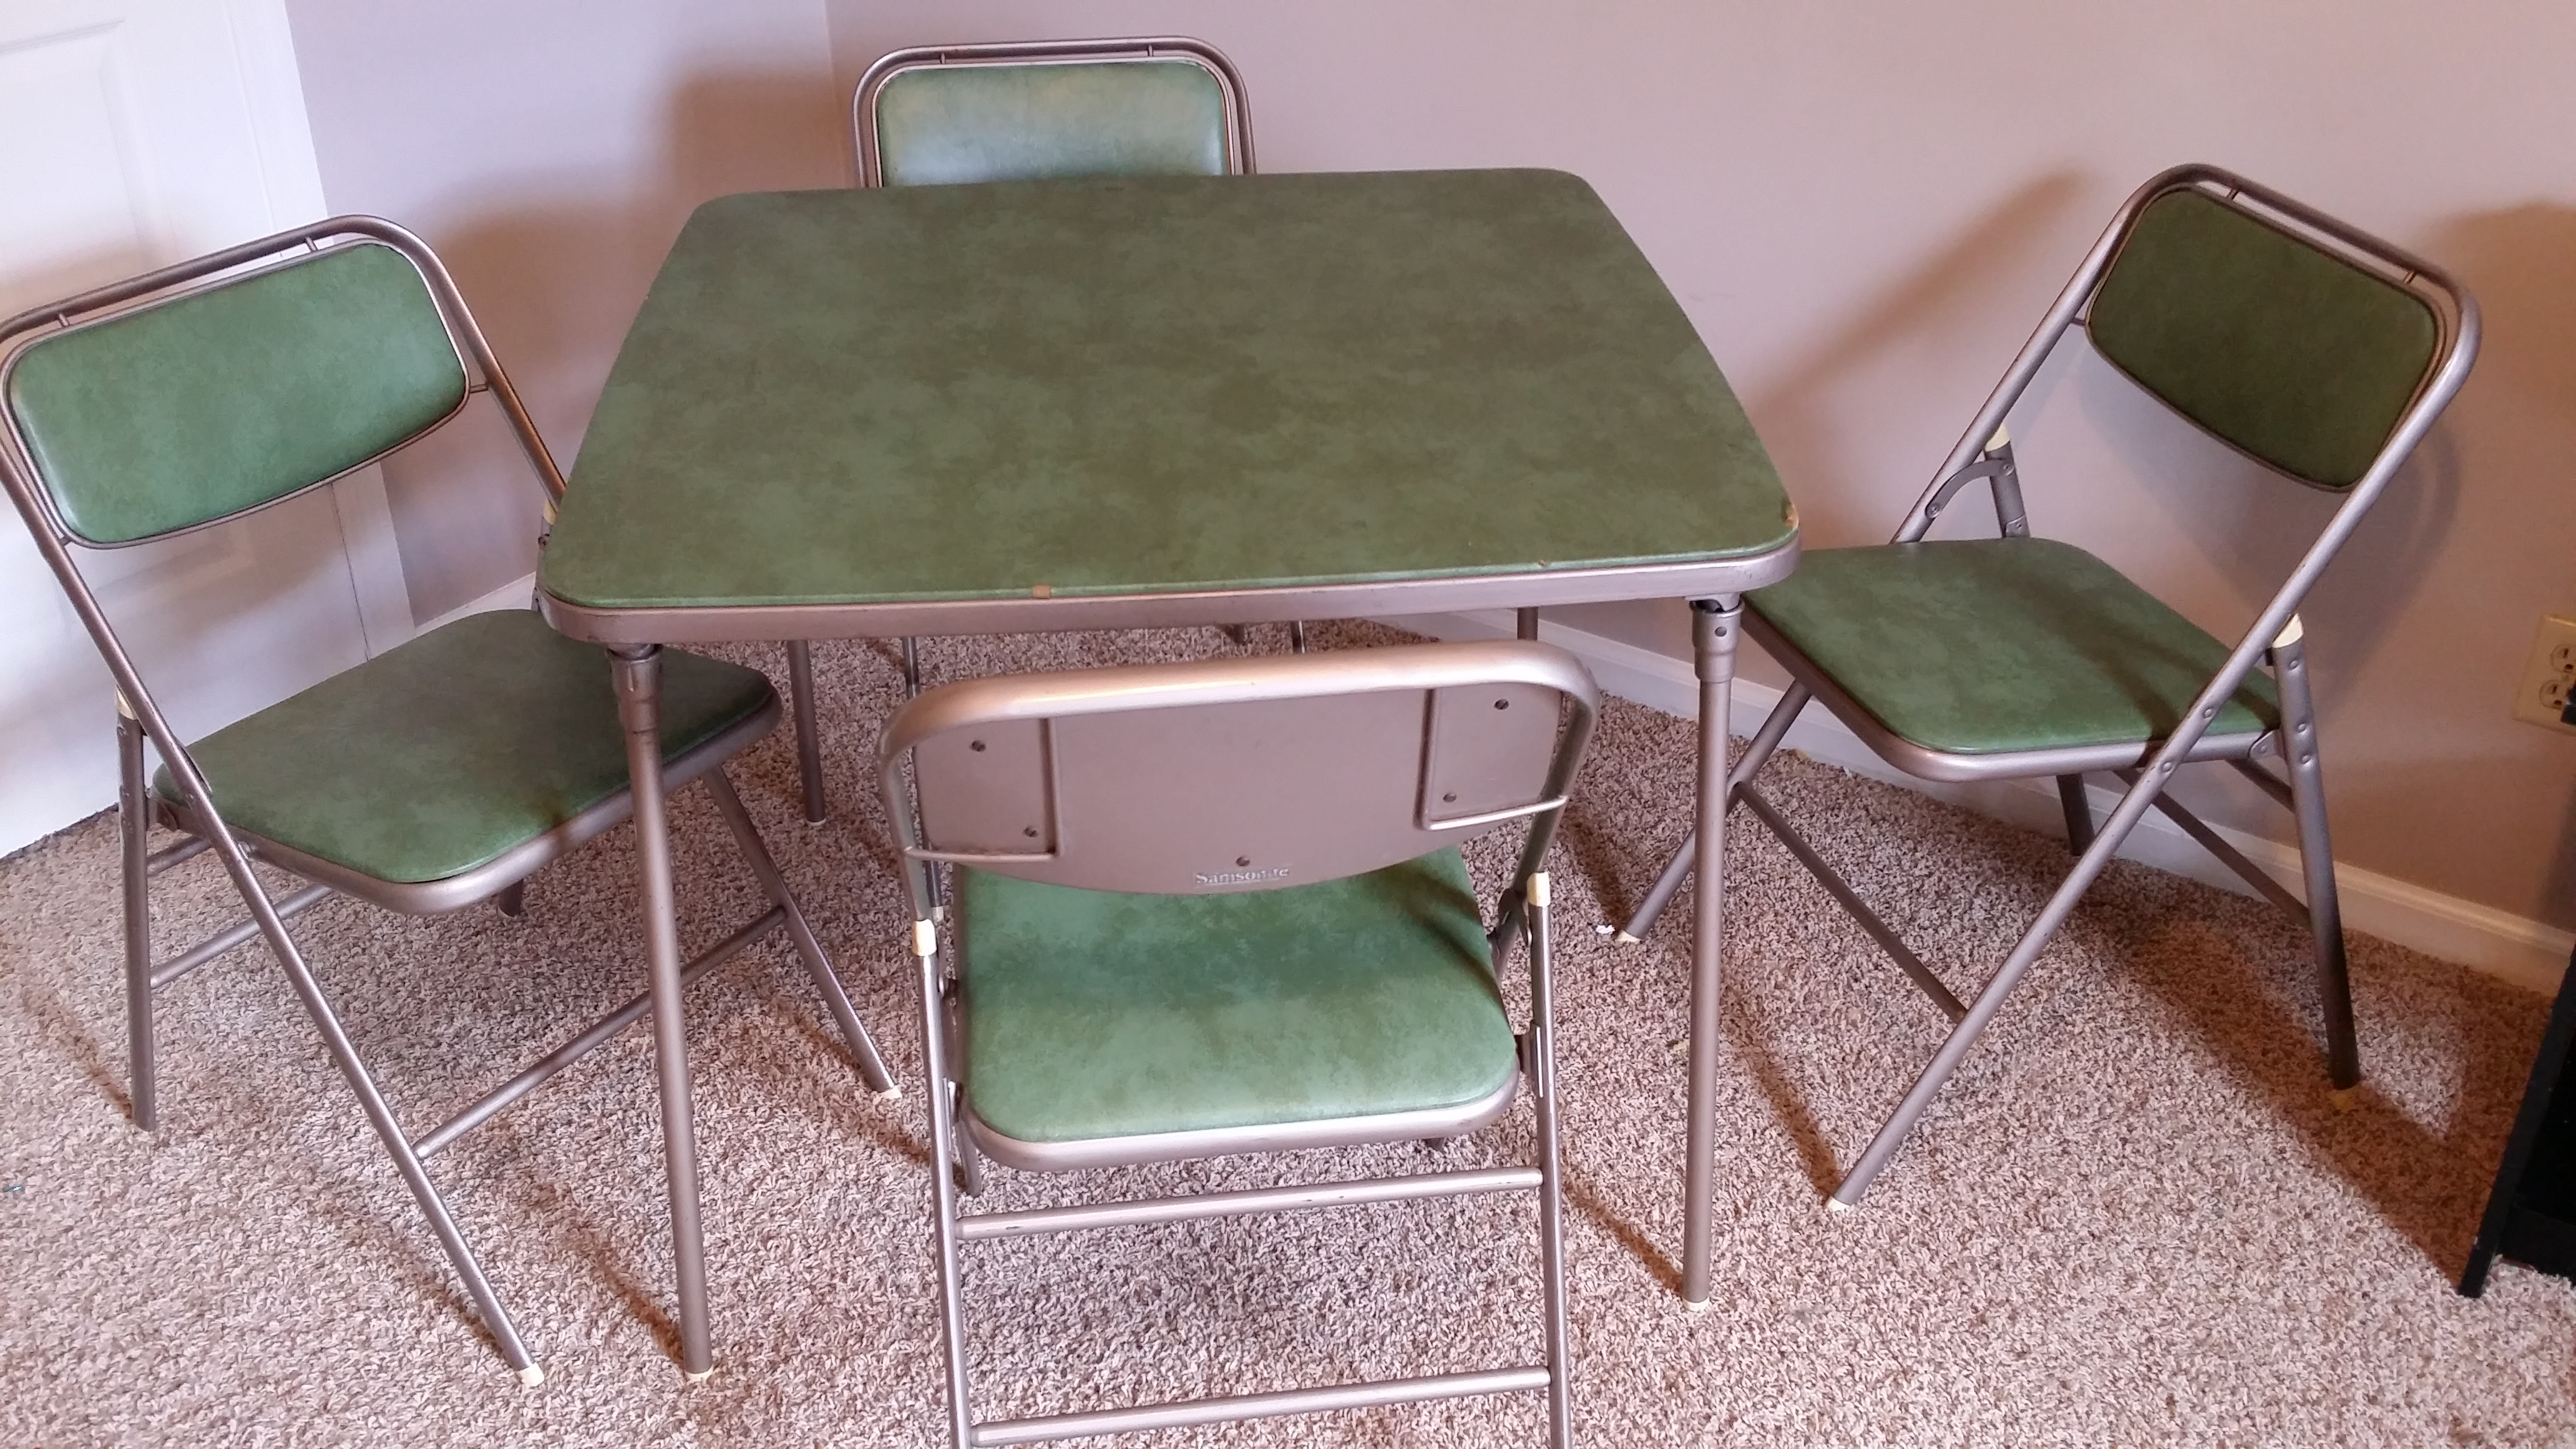 Samsonite card table and chairs antique appraisal